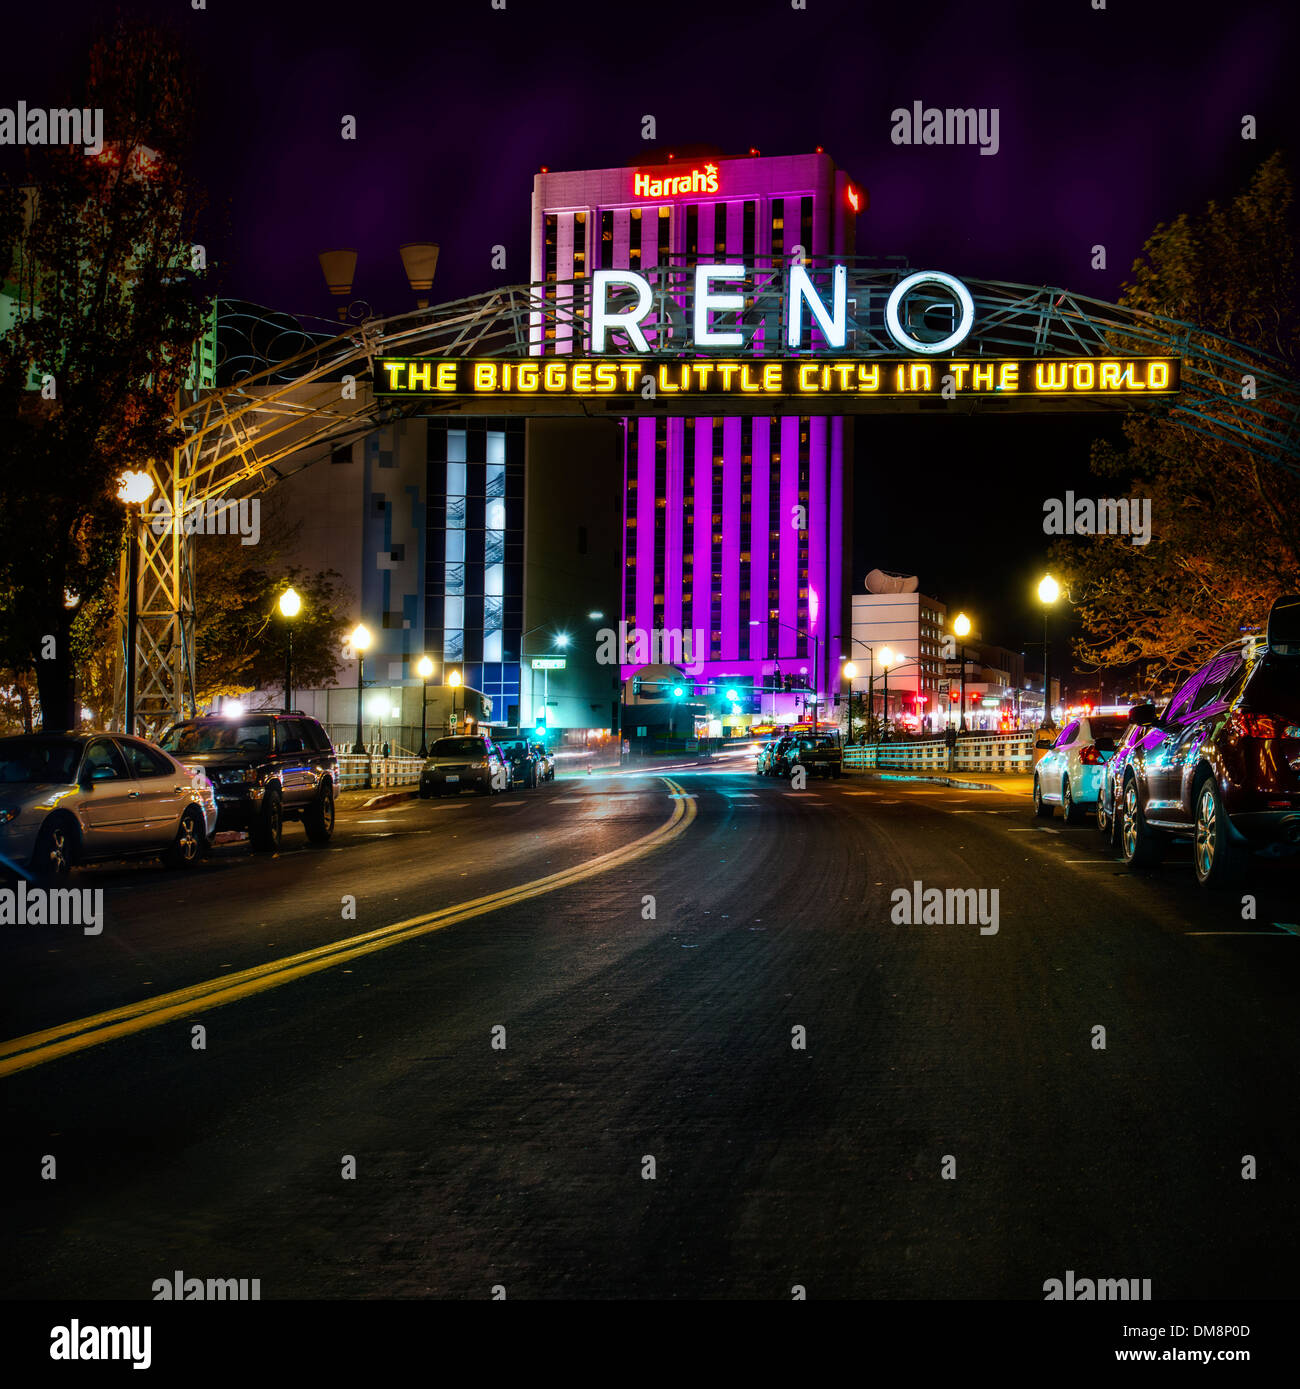 A night view of the old Reno sign  on 4th street in downtown Reno Nevada - Stock Image